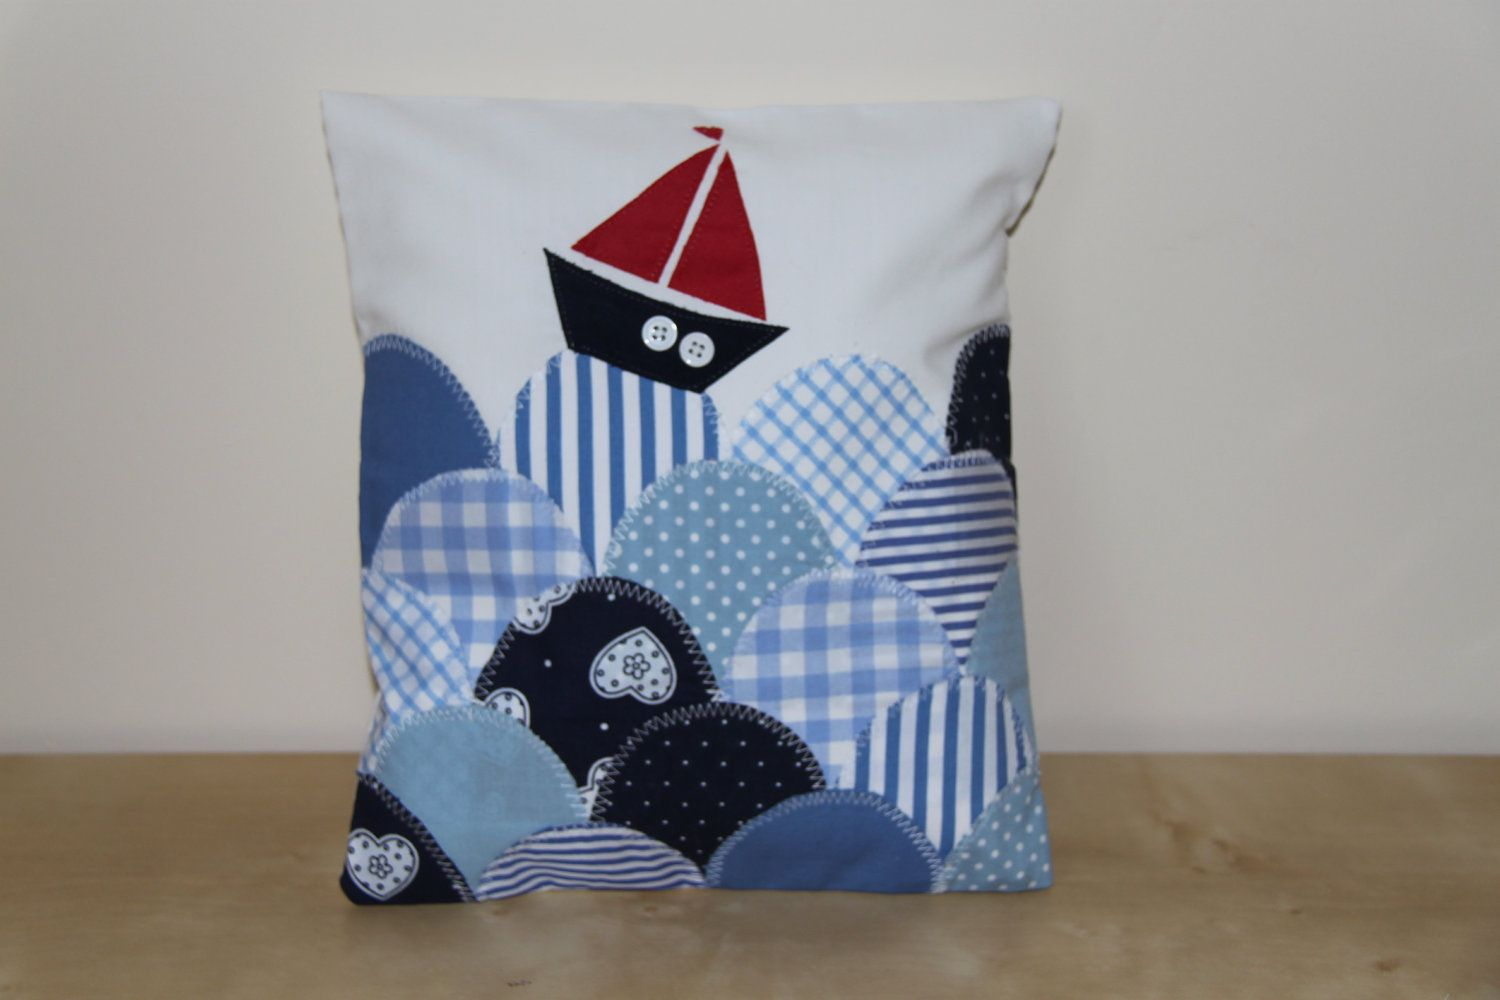 Handmade nautical cushion with boat and waves applique pillow